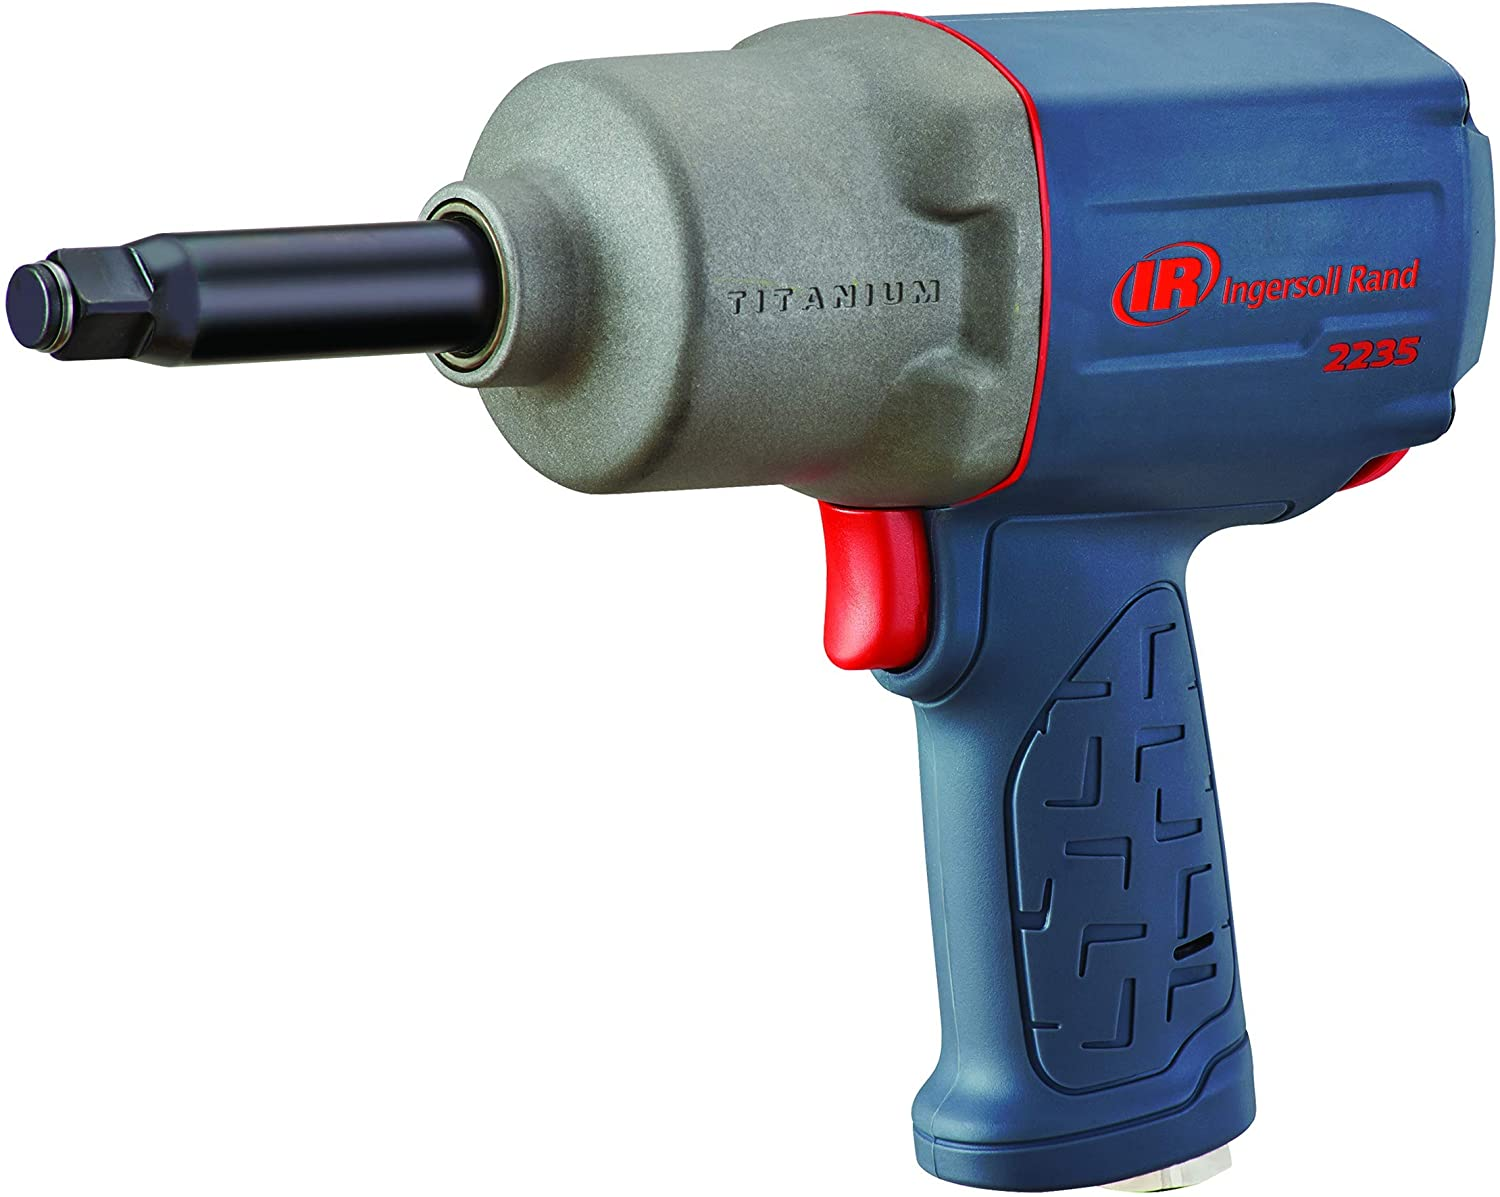 Ingersoll Rand 2235TiMAX-2 1/2″ Drive Air Impact Wrench